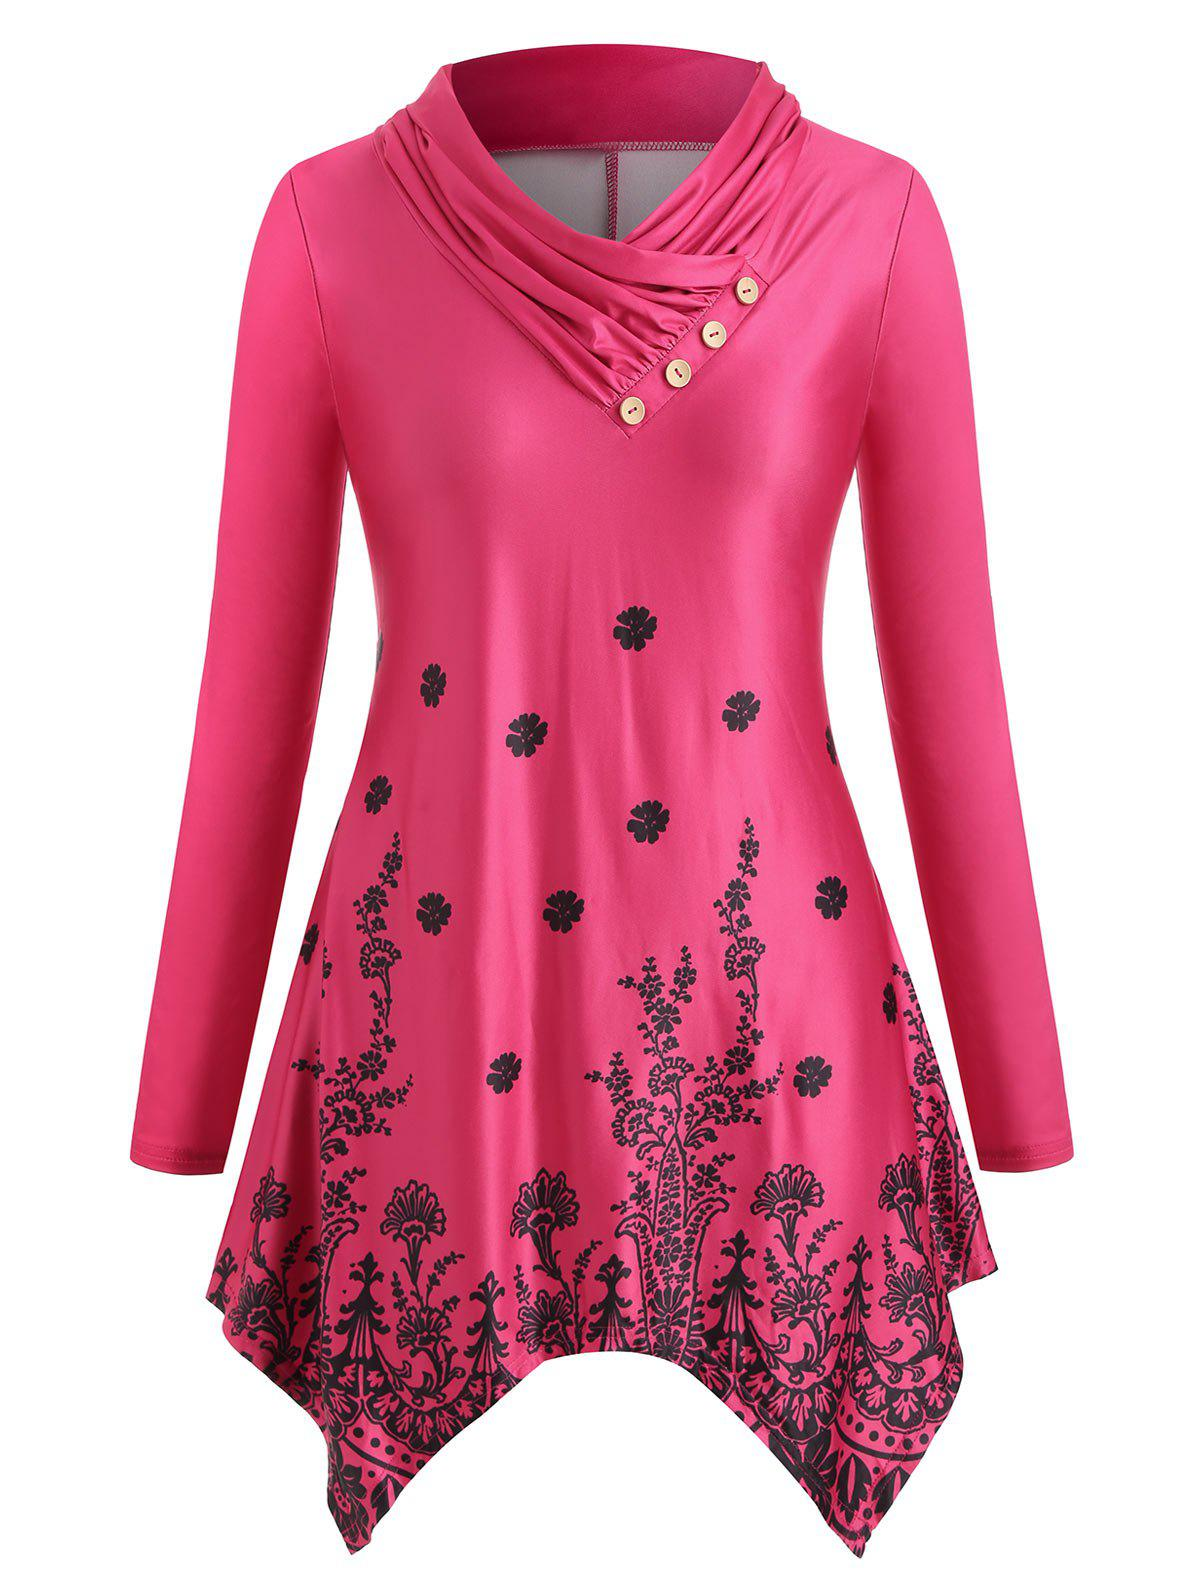 Cowl Neck Plant Print Plus Size Long Sleeve Tunic Top - WATERMELON PINK 4X